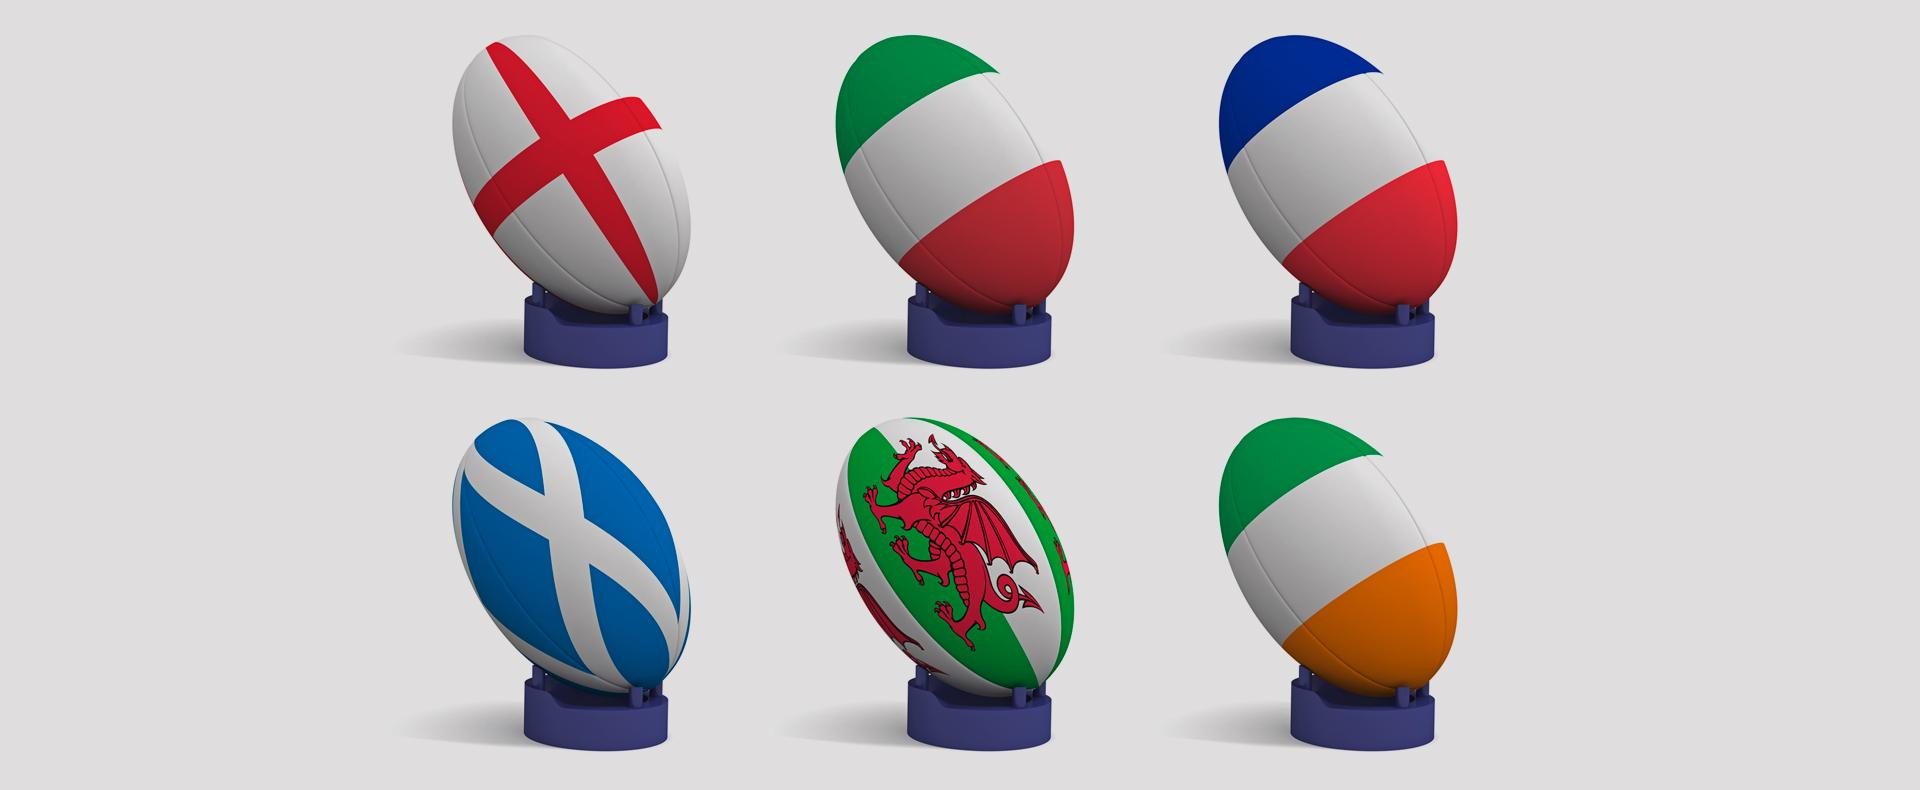 Tournois des VI Nations